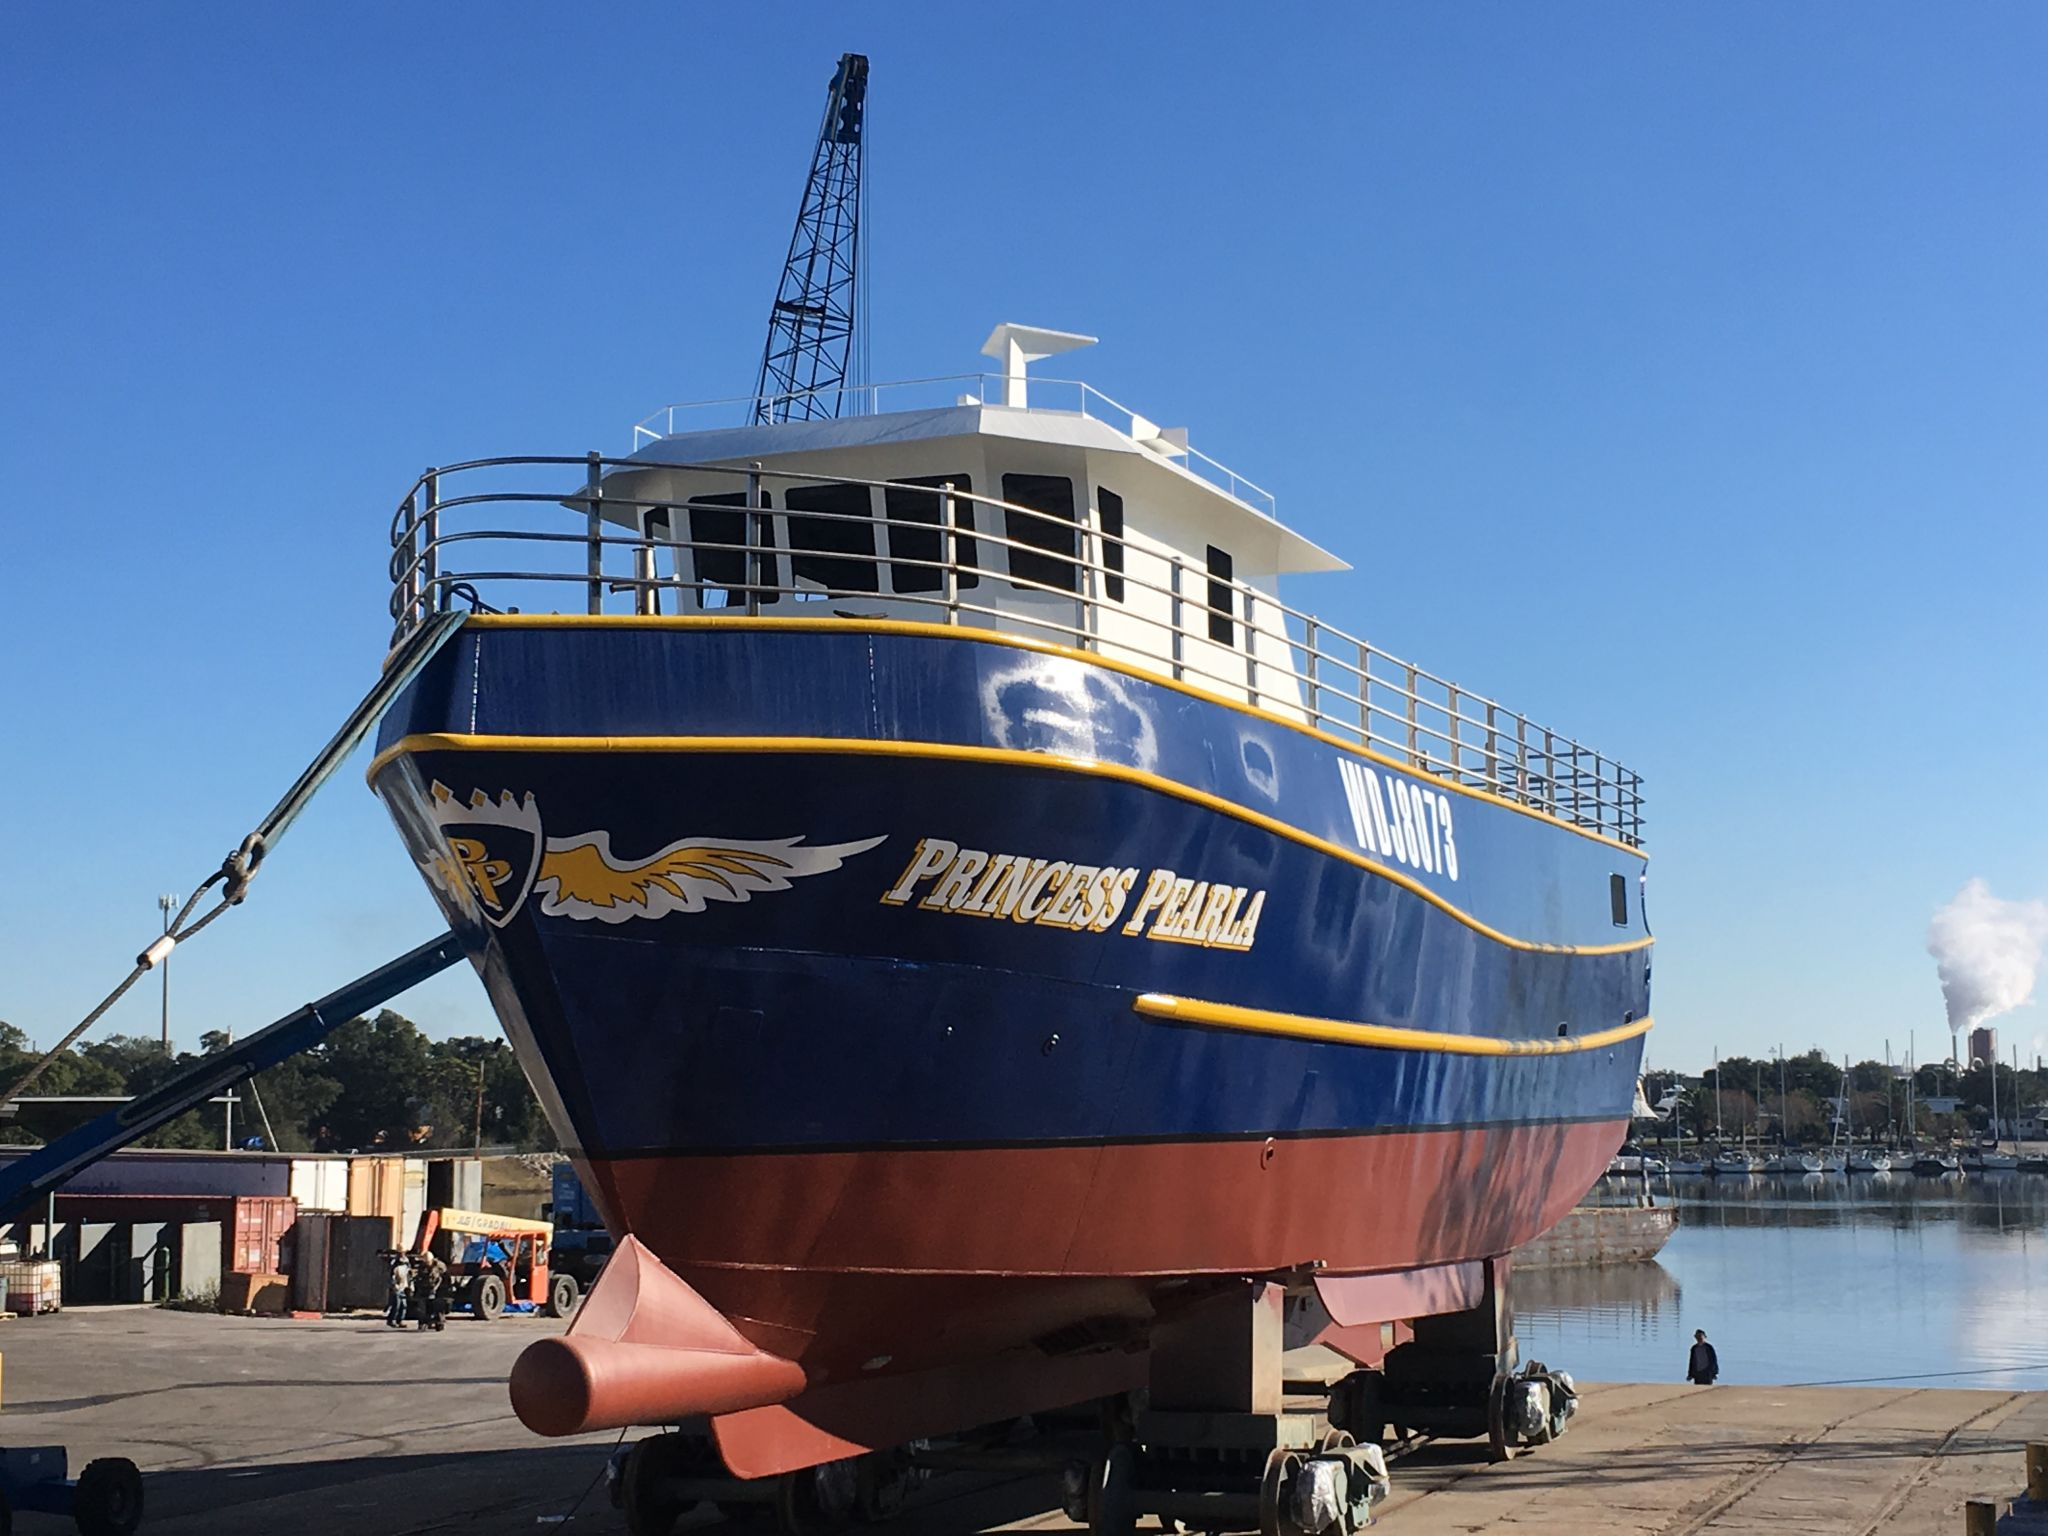 Patti Marine Vessel Construction History | Patti Marine